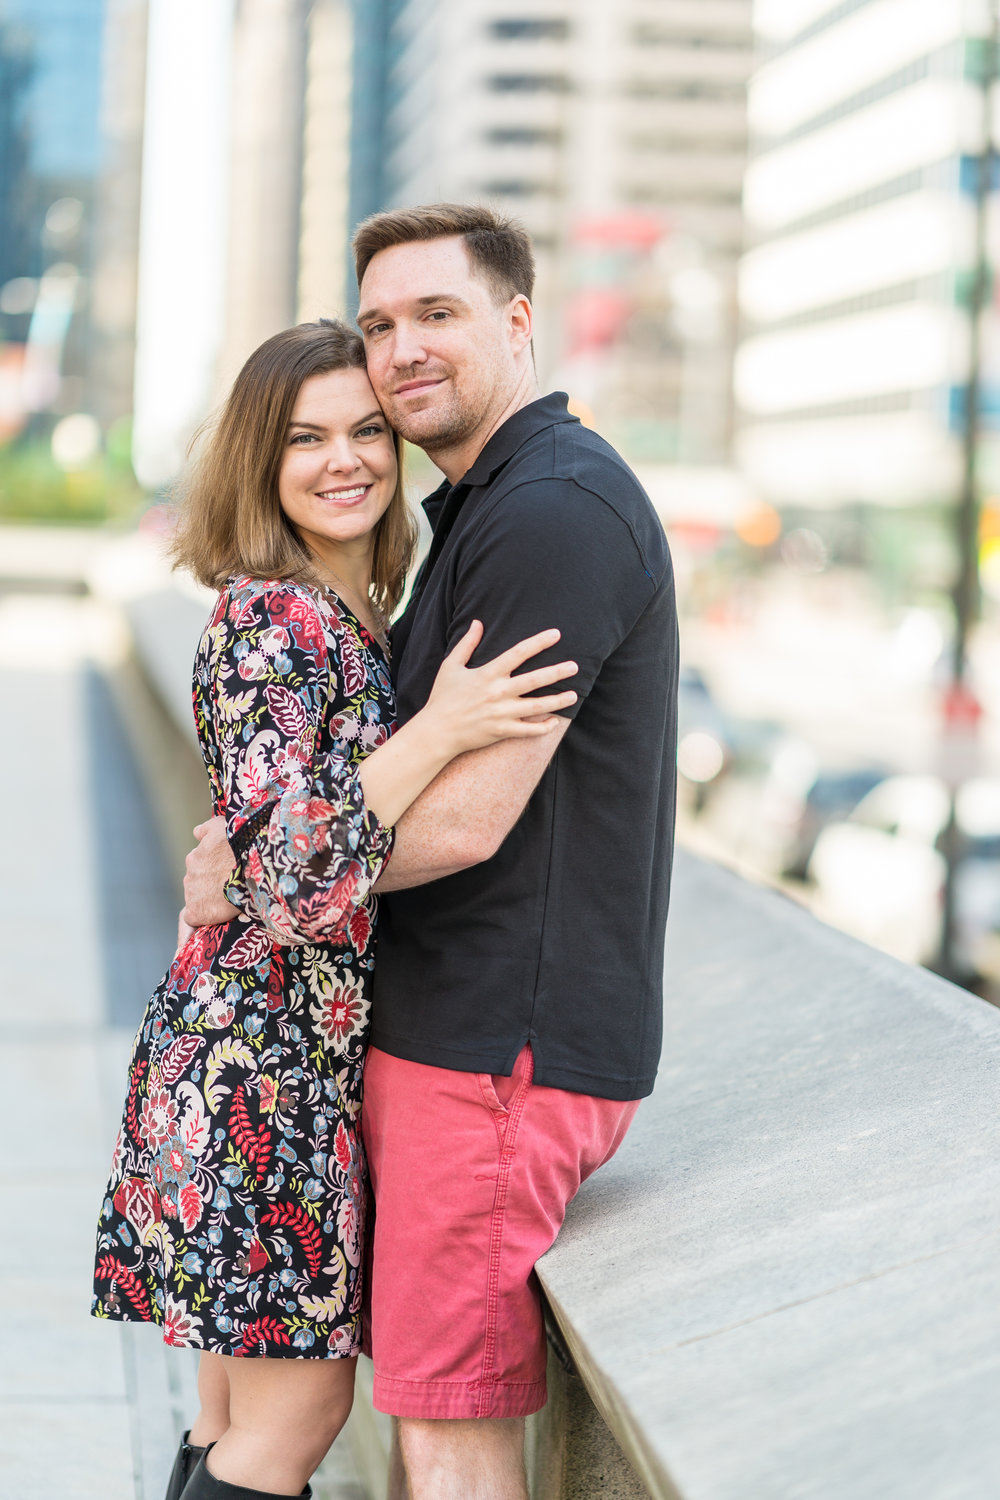 dilworth park engagement